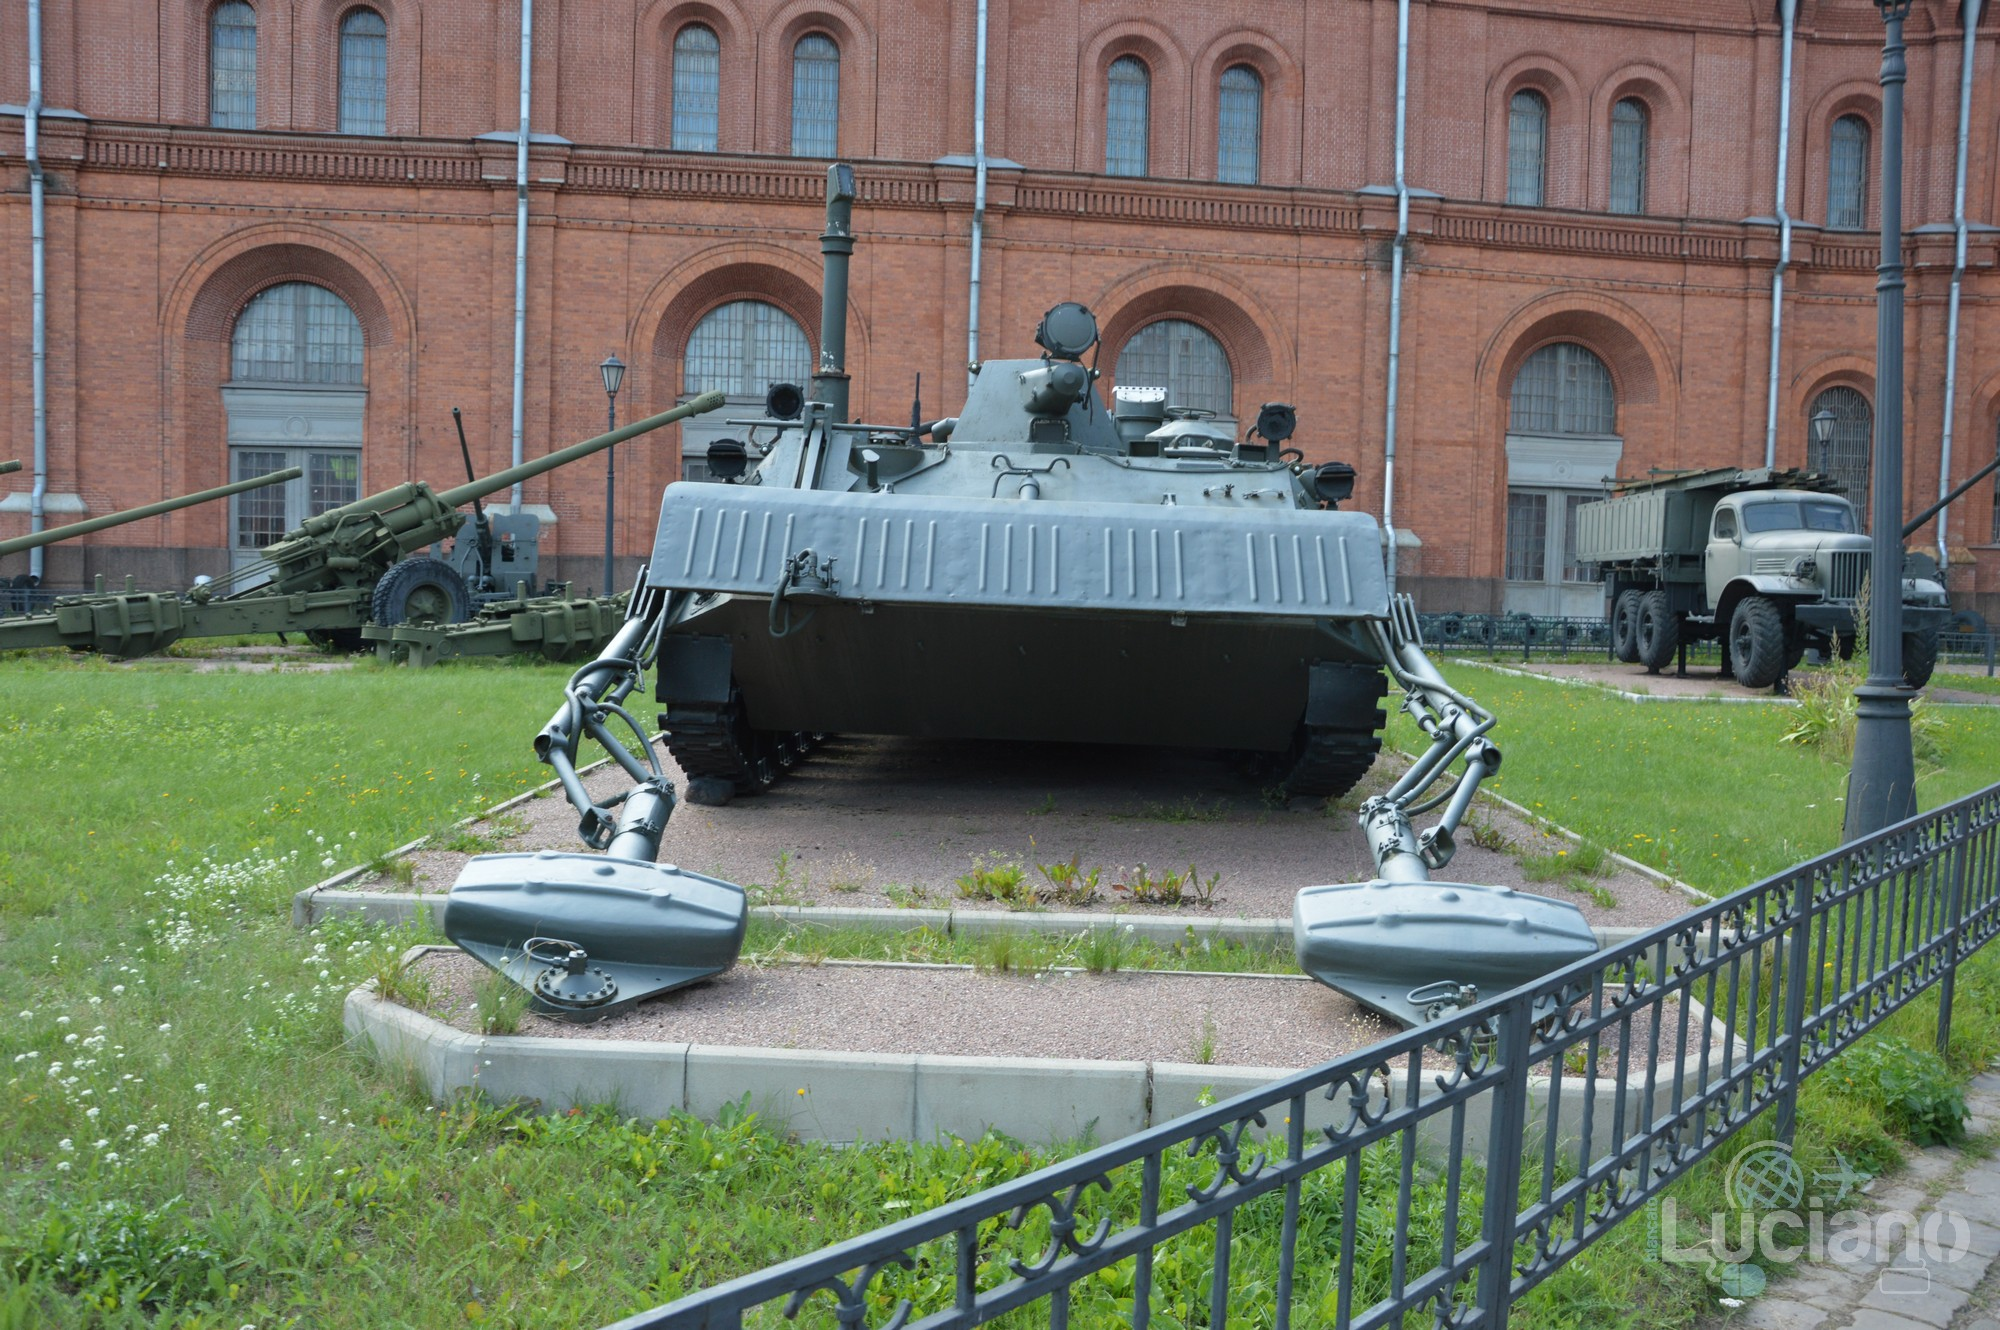 Military-Historical-Museum-of-Artillery-Engineer-and-Signal-Corps-St-Petersburg-Russia-Luciano-Blancato- (83)